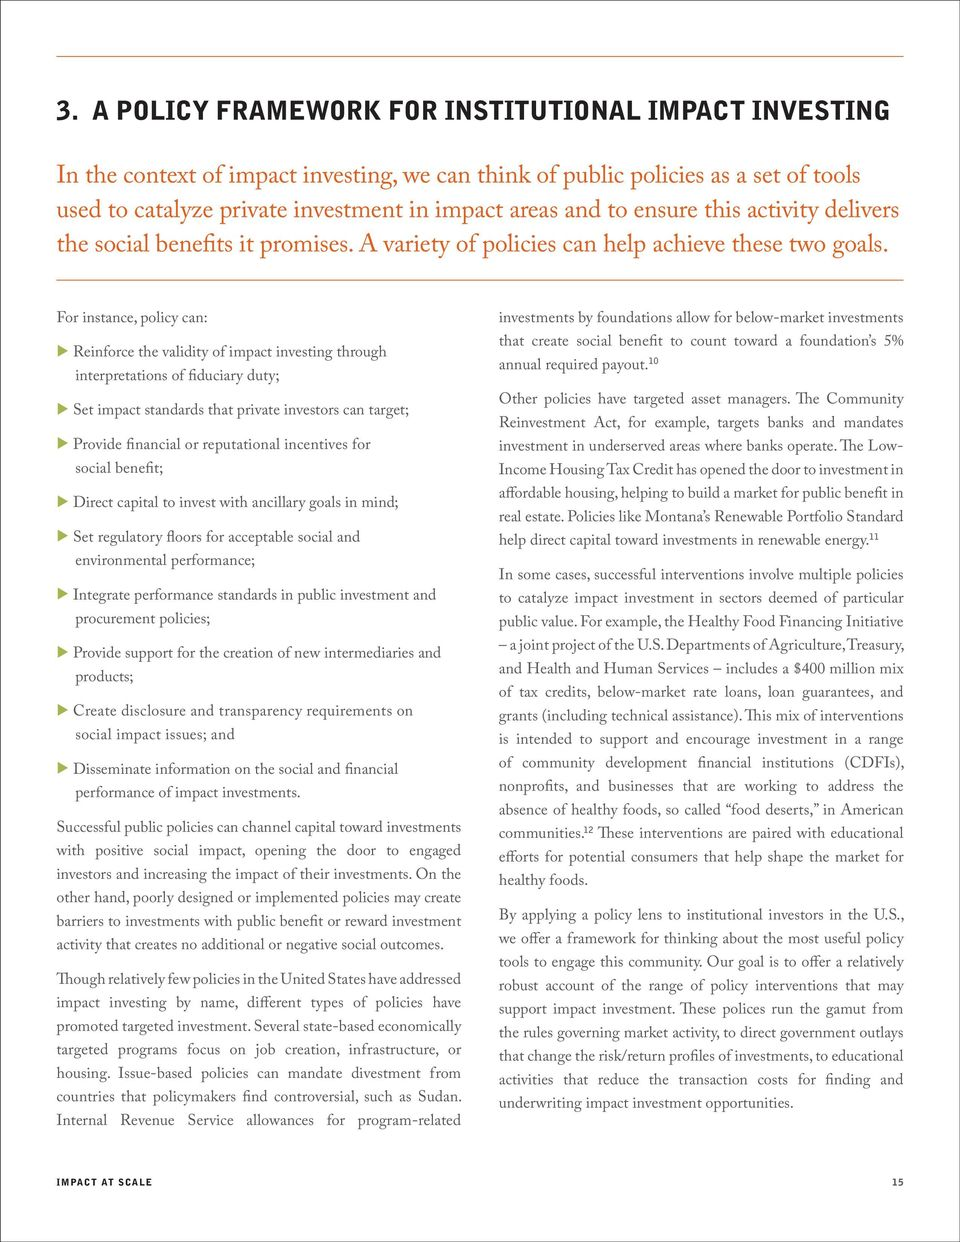 For instance, policy can: ureinforce the validity of impact investing through interpretations of fiduciary duty; uset impact standards that private investors can target; uprovide financial or